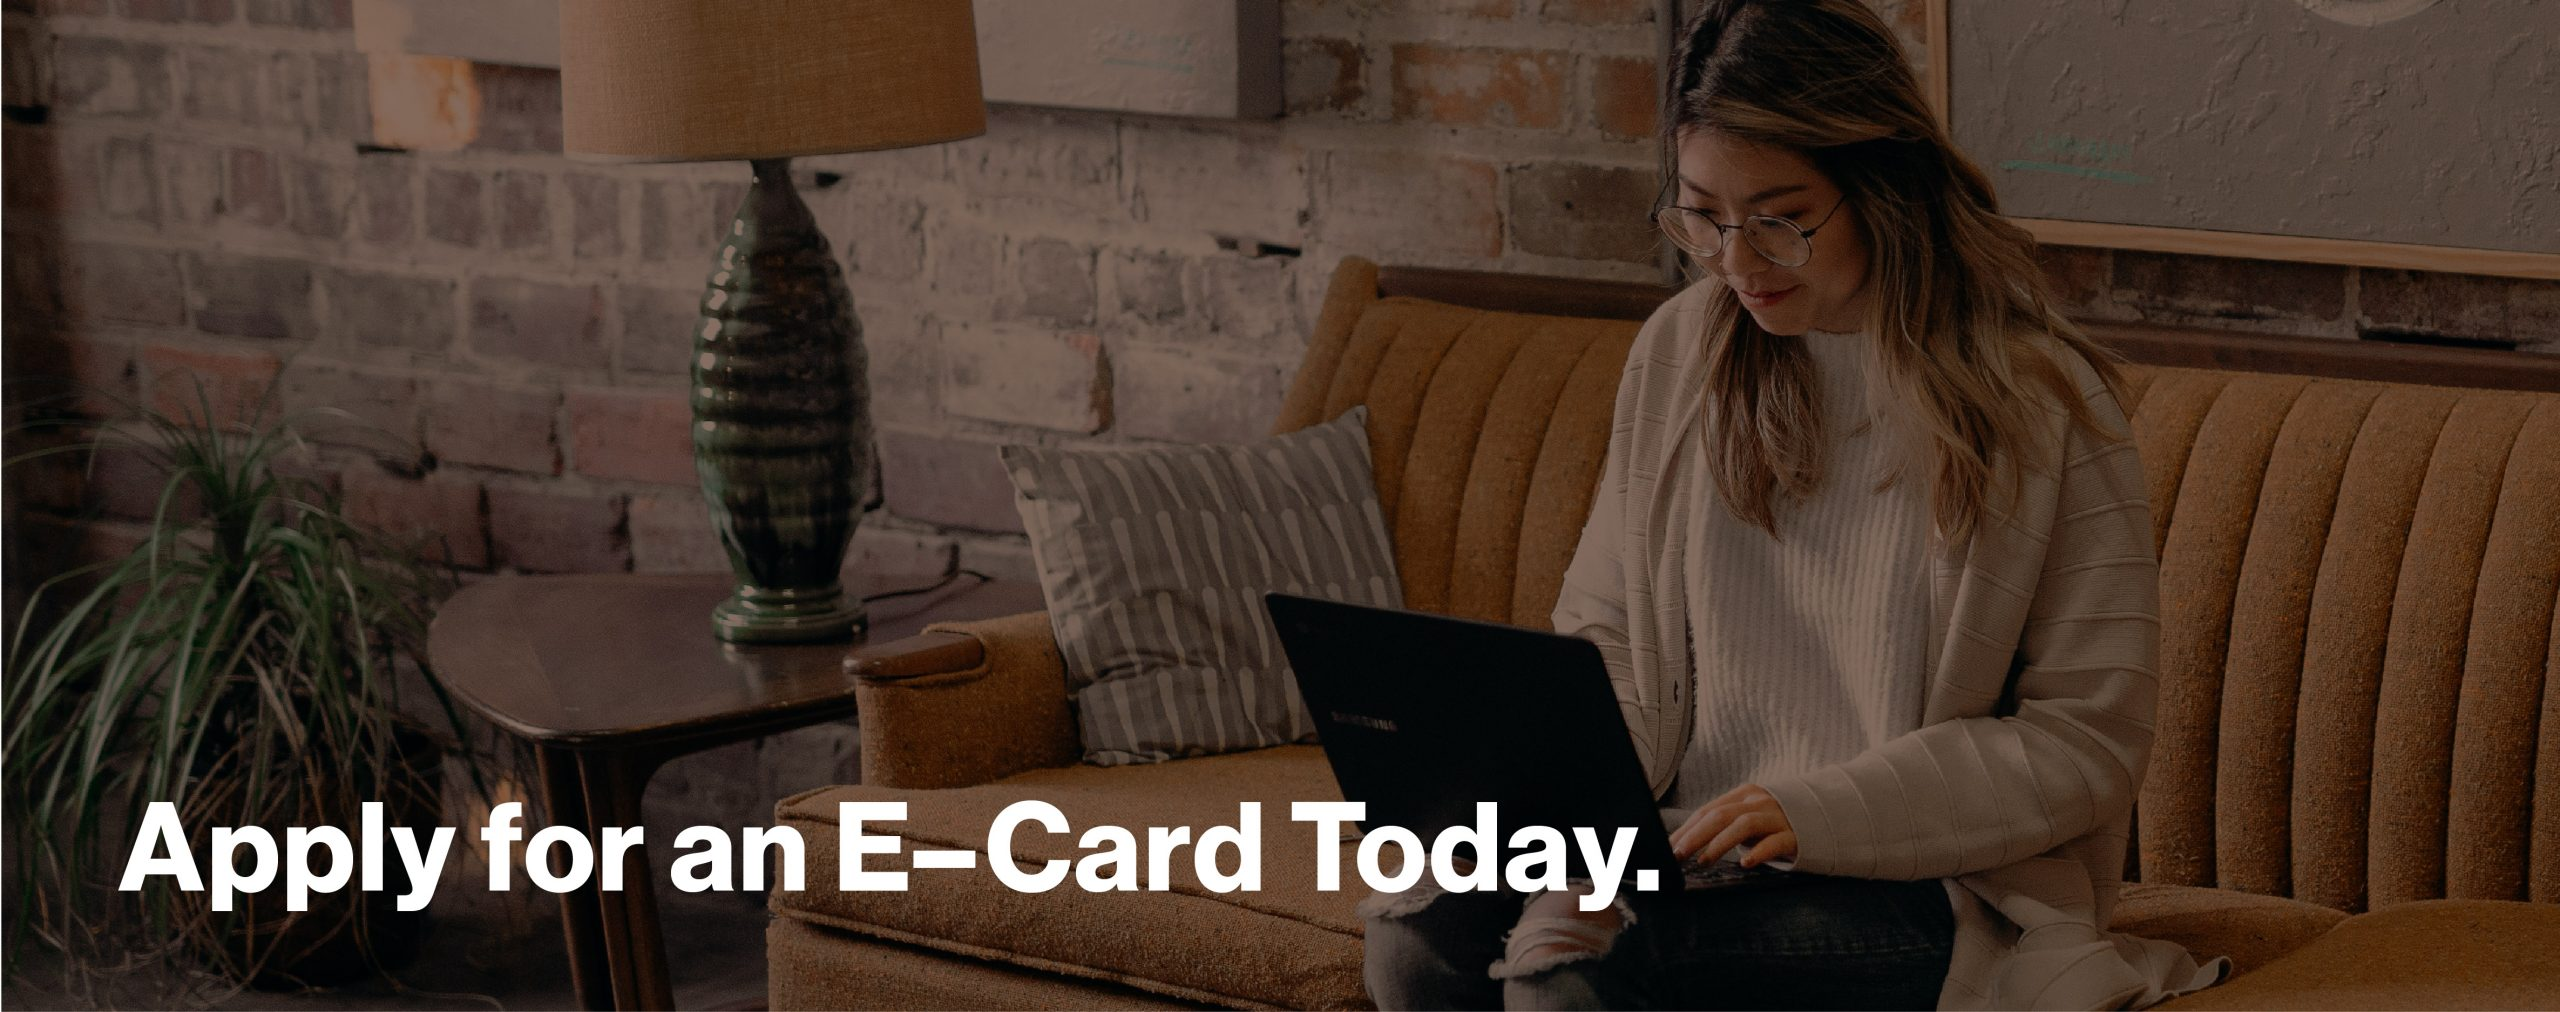 Apply for an e-card today